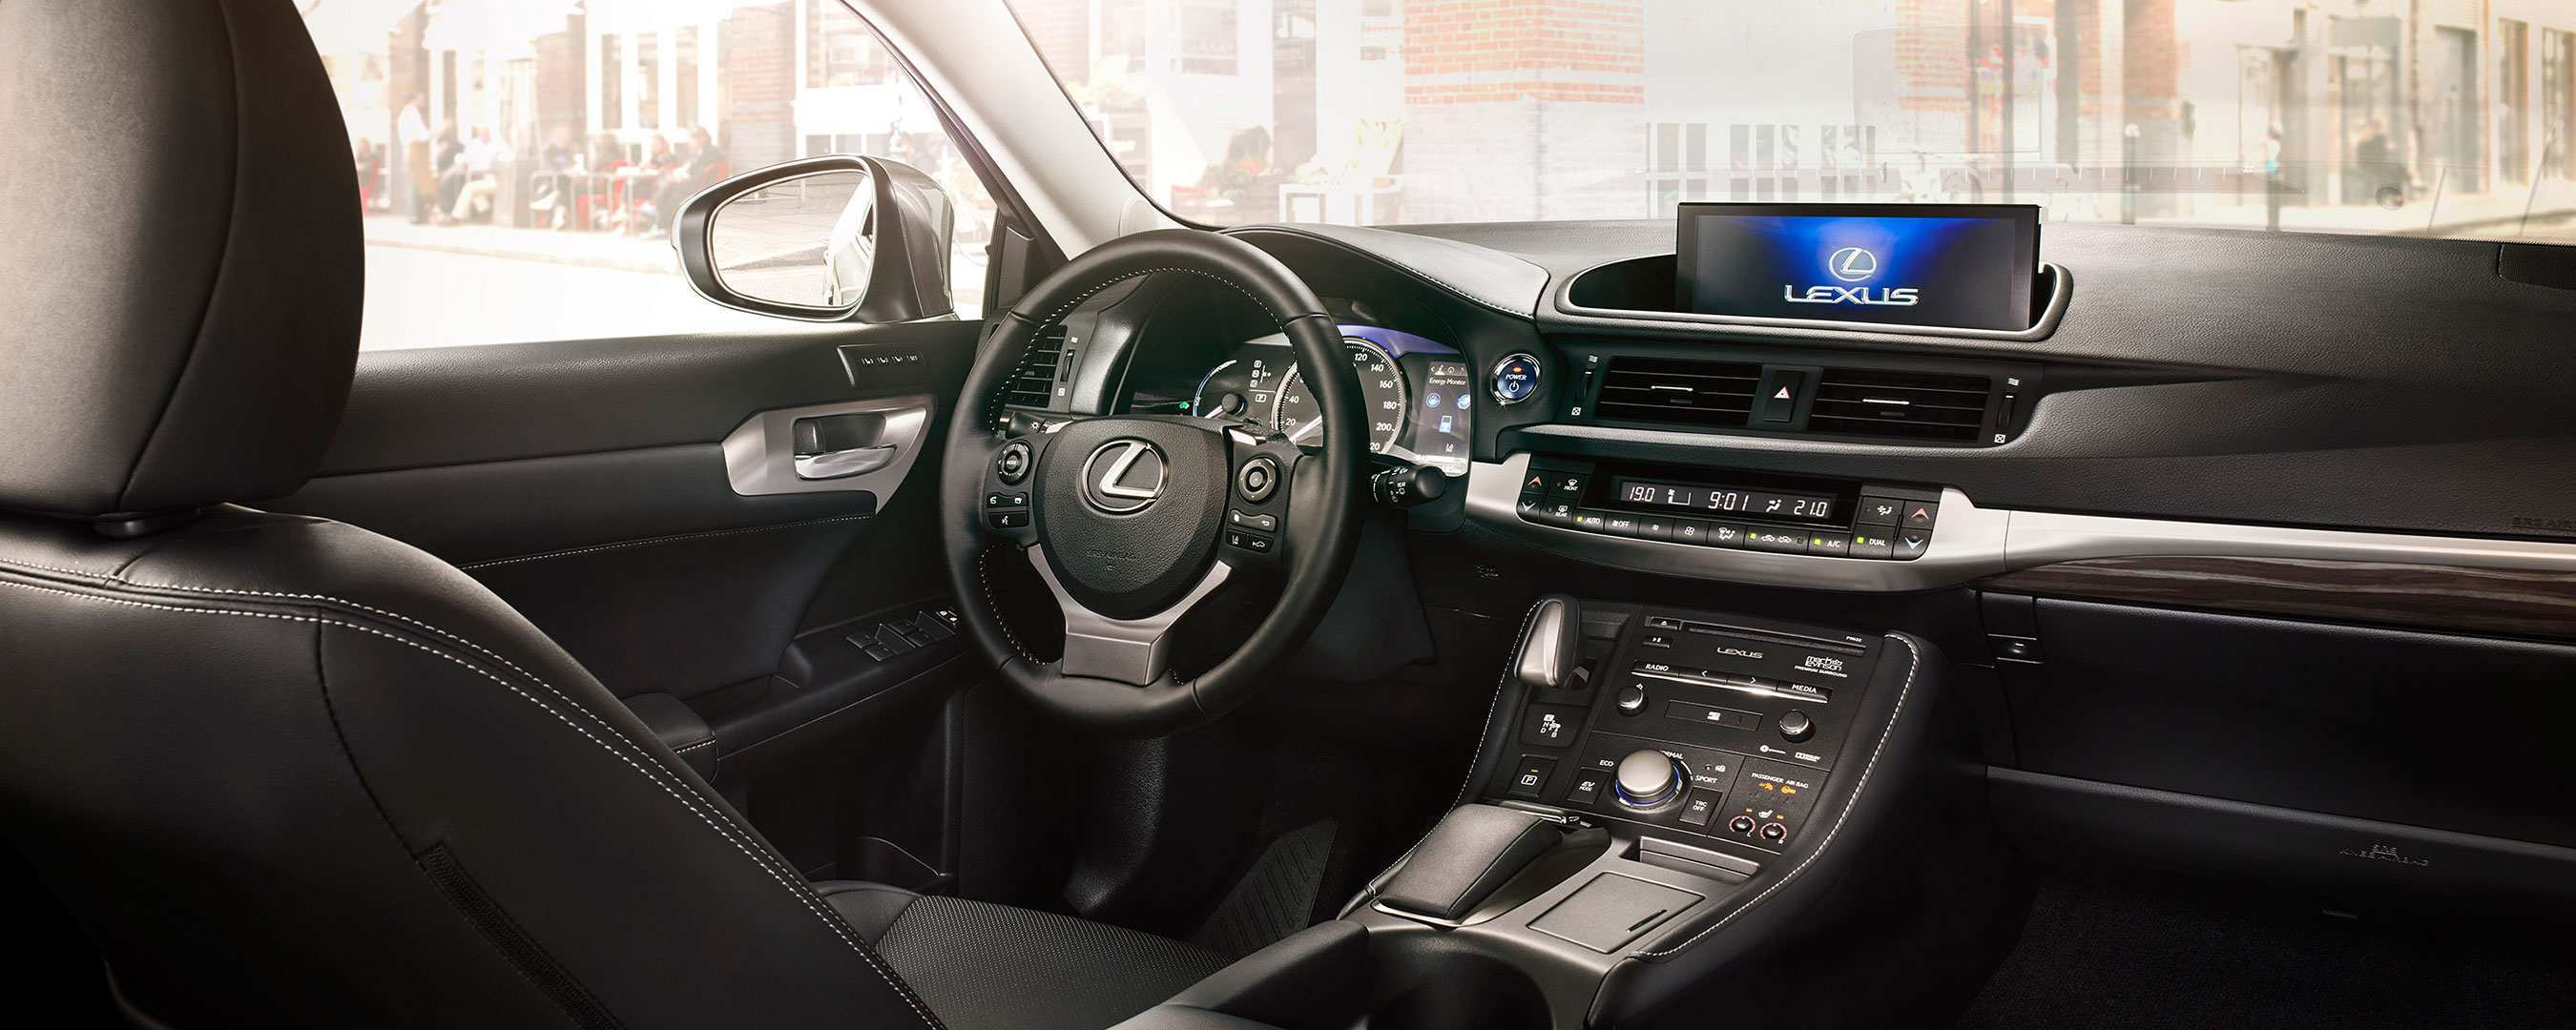 15 All New New Lexus Ct 2019 Images